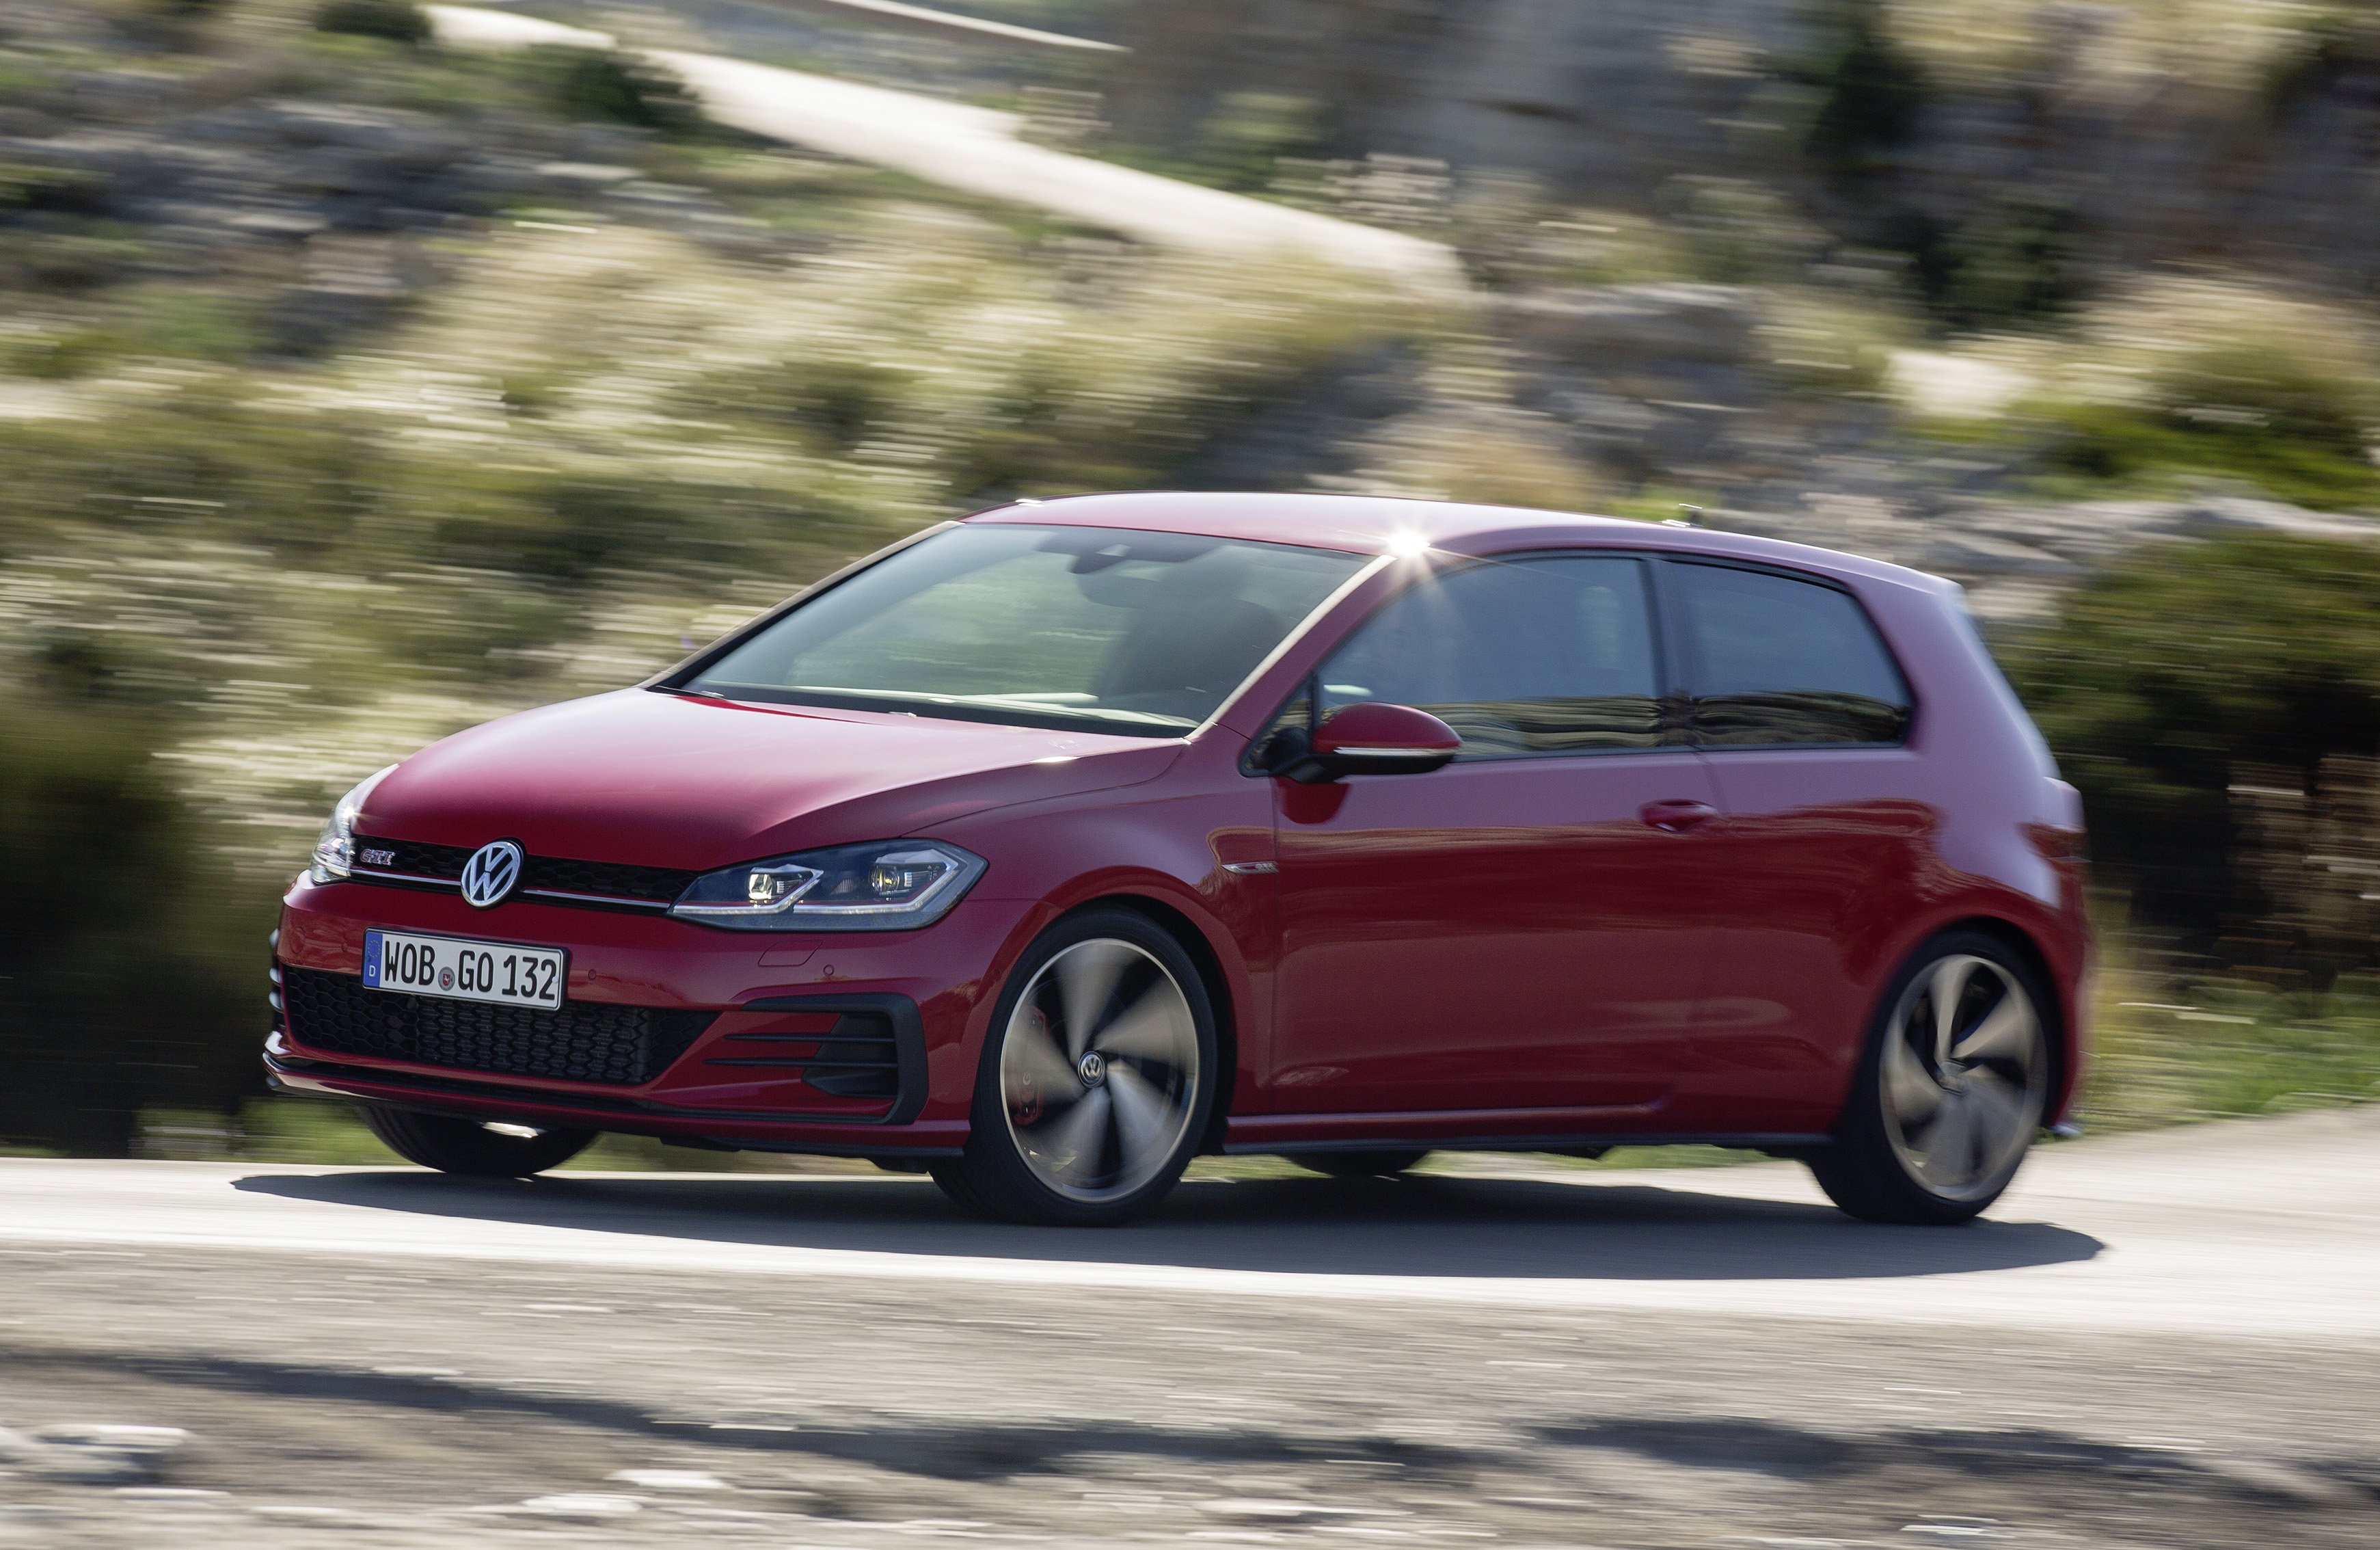 News 3 Door Vw Golf Gti With 180kw Due Here In August